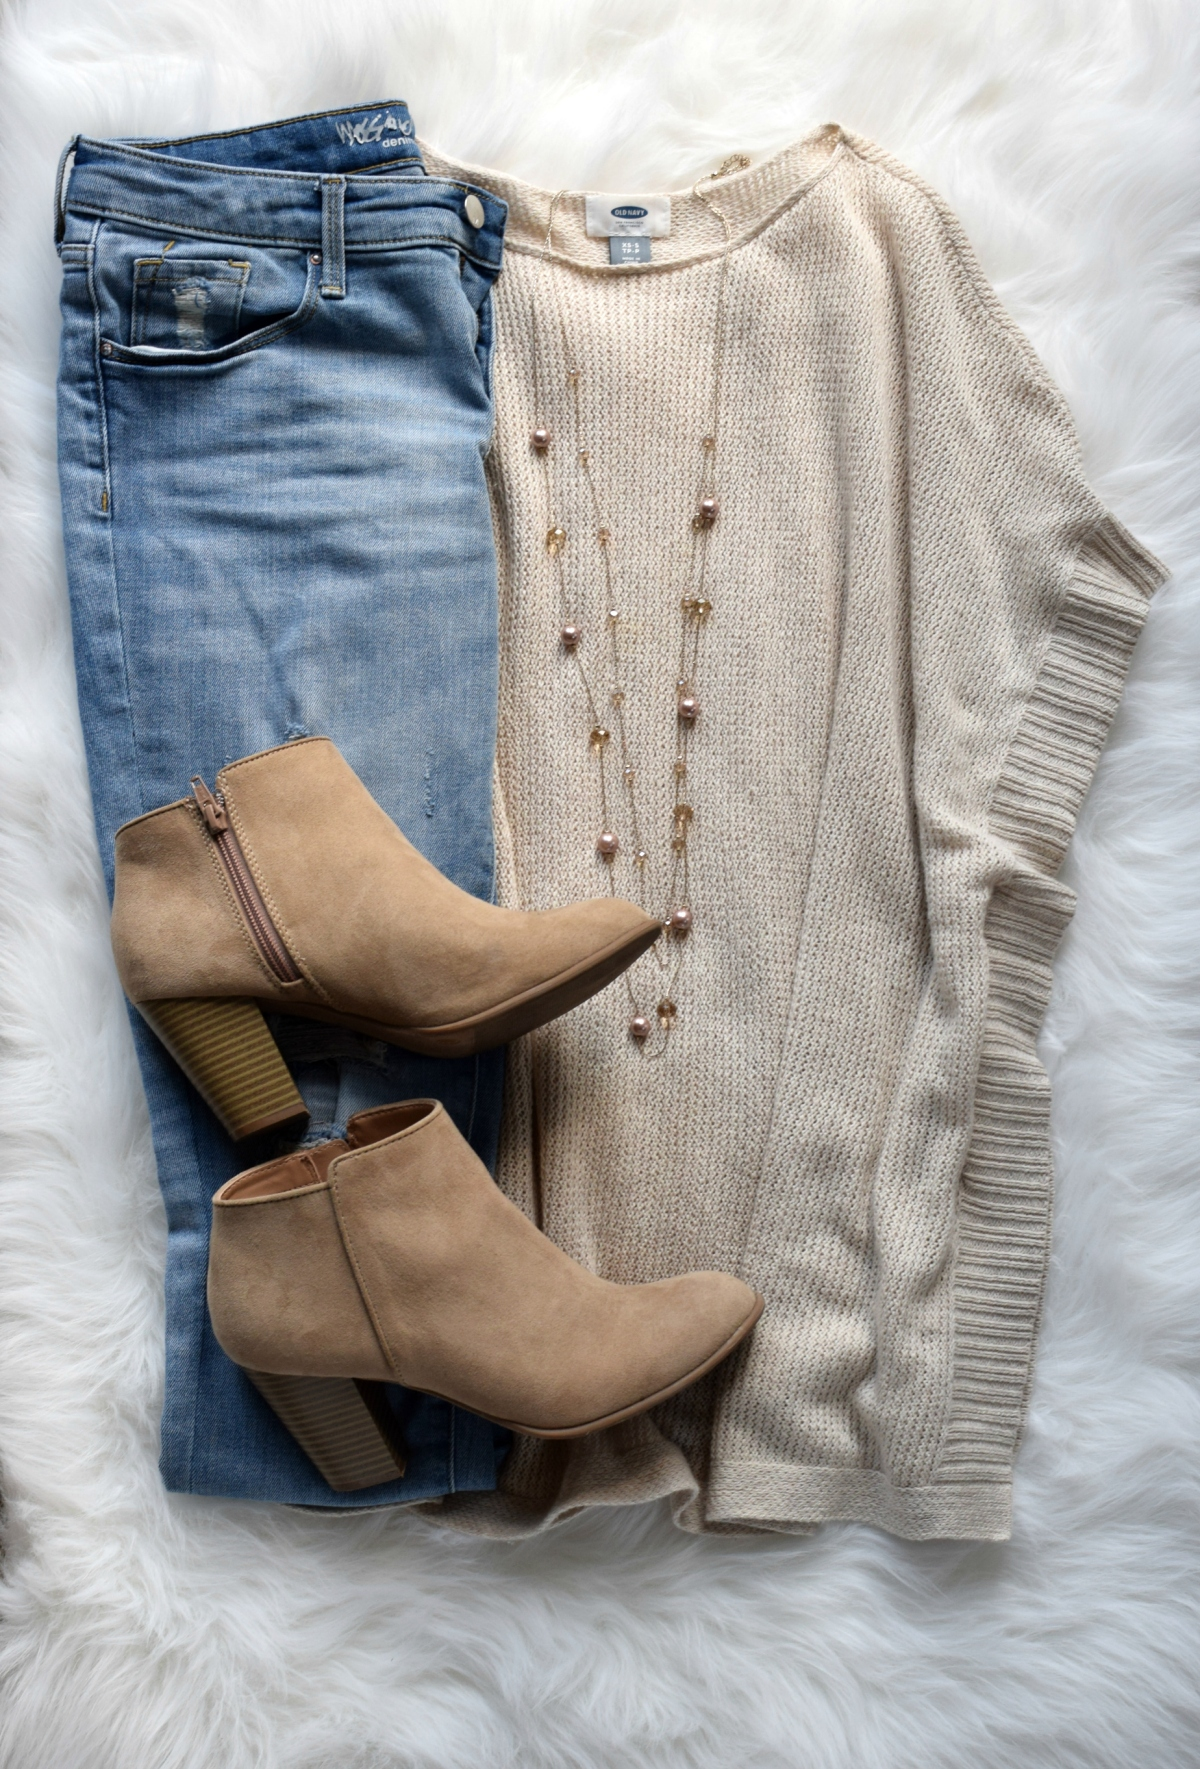 Cape sweater and ankle booties |www.pearlsandsportsbras.com|